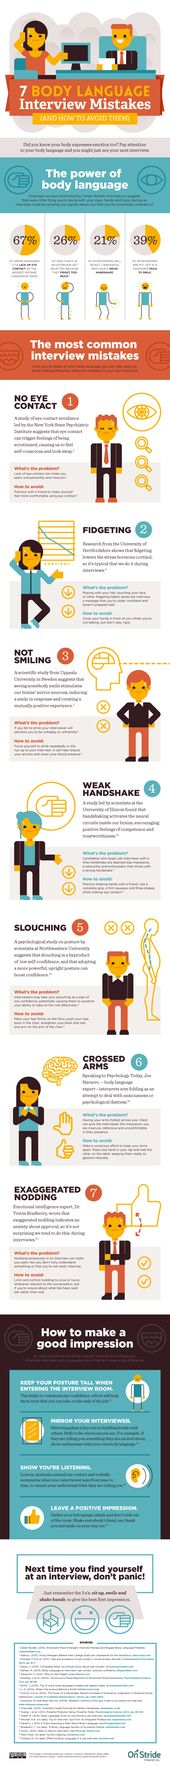 The 7 Body Language Job Interview Mistakes Infographic shows some - common resume skills